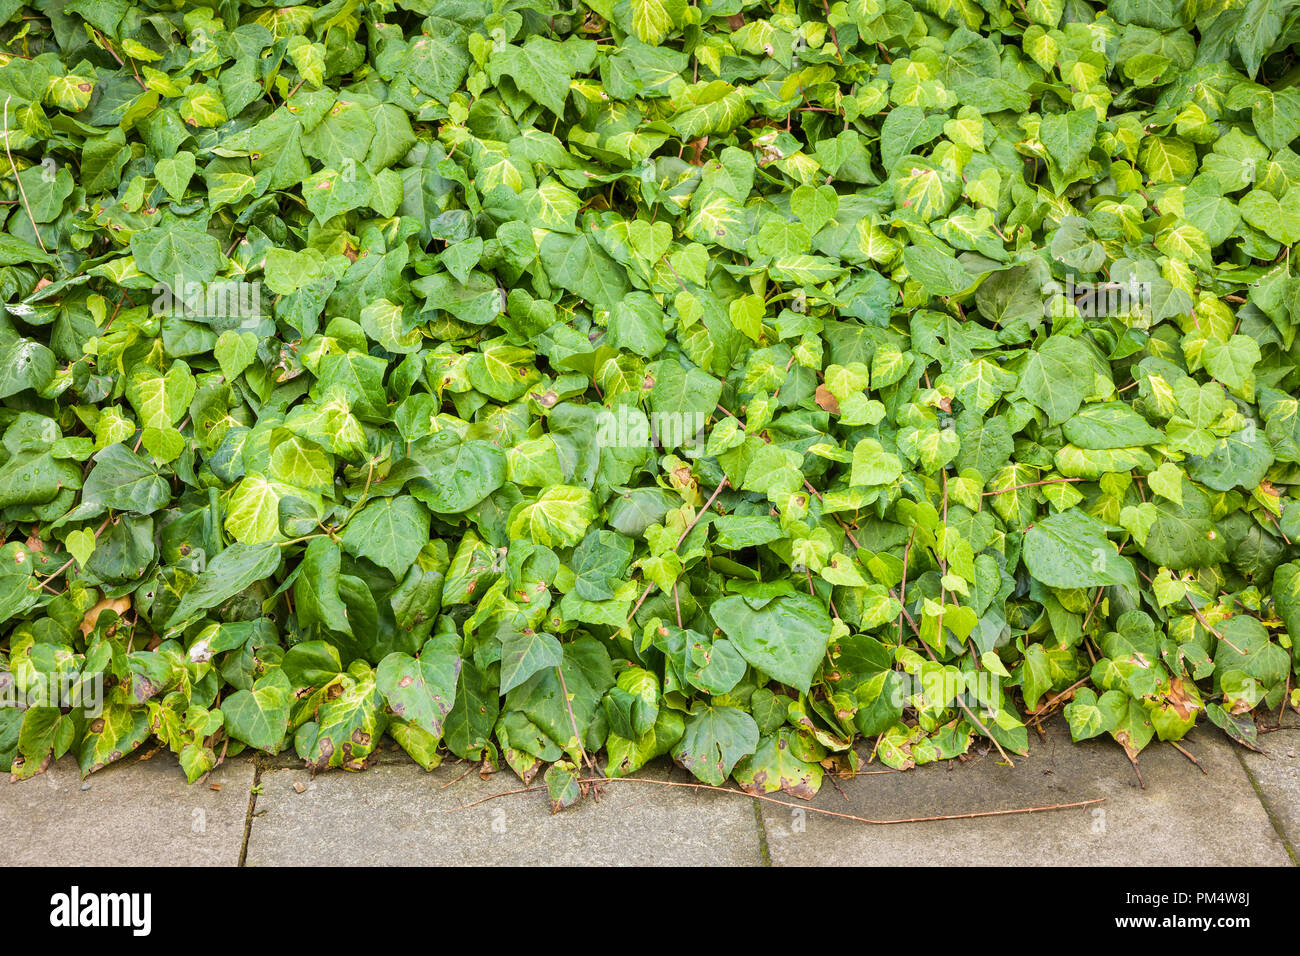 Ivy (Hedera) used as urban design evergreen ground cover in the UK - Stock Image